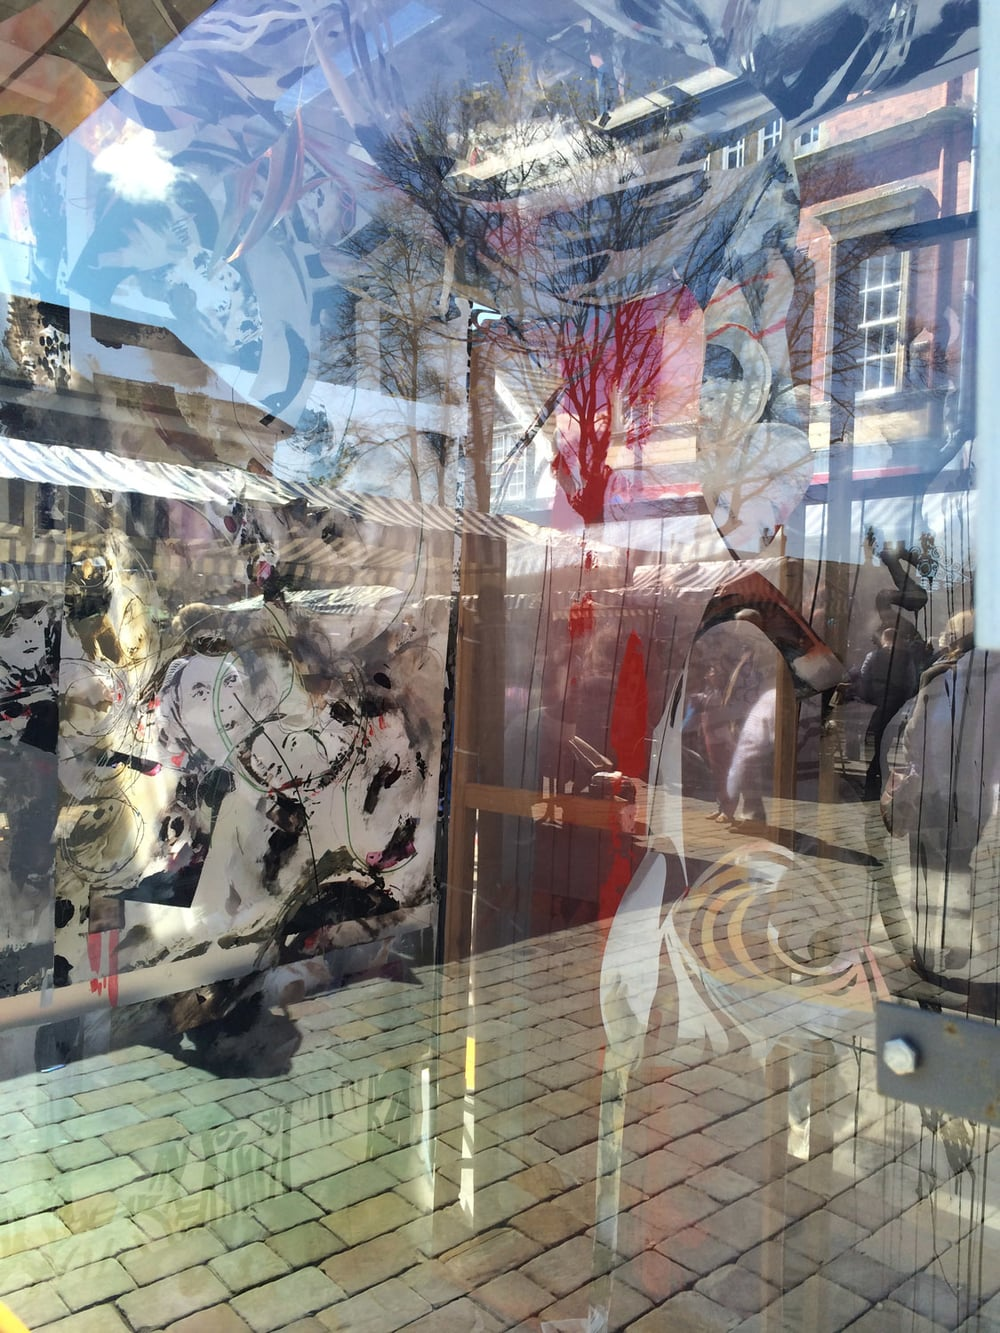 xxx barnaby kiosk reflections and inside.jpg